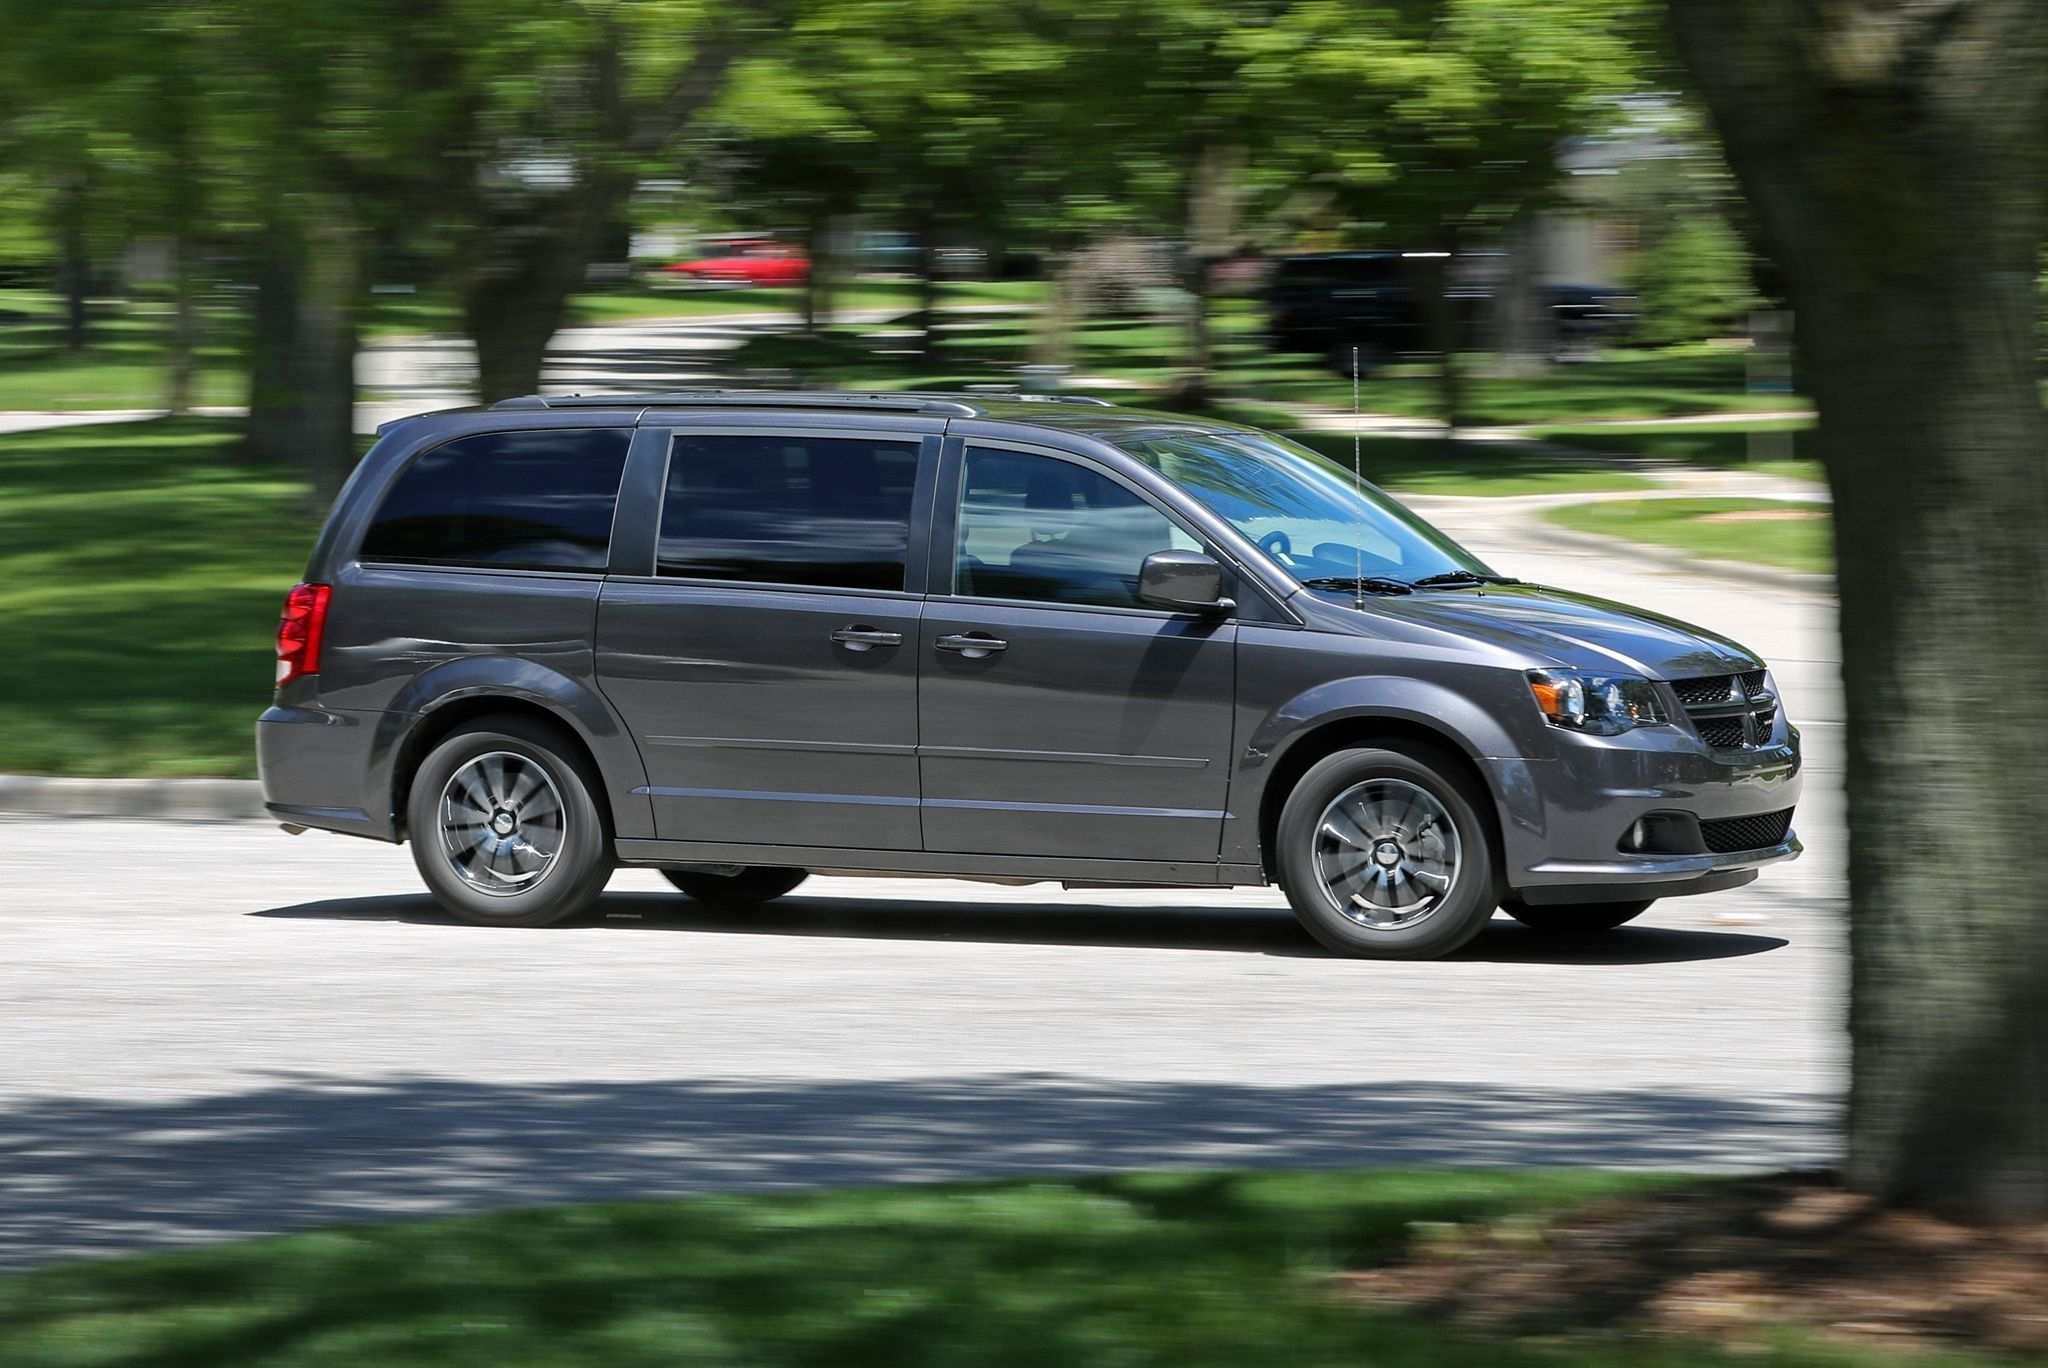 23 Best Review 2020 Dodge Grand Caravan Style by 2020 Dodge Grand Caravan